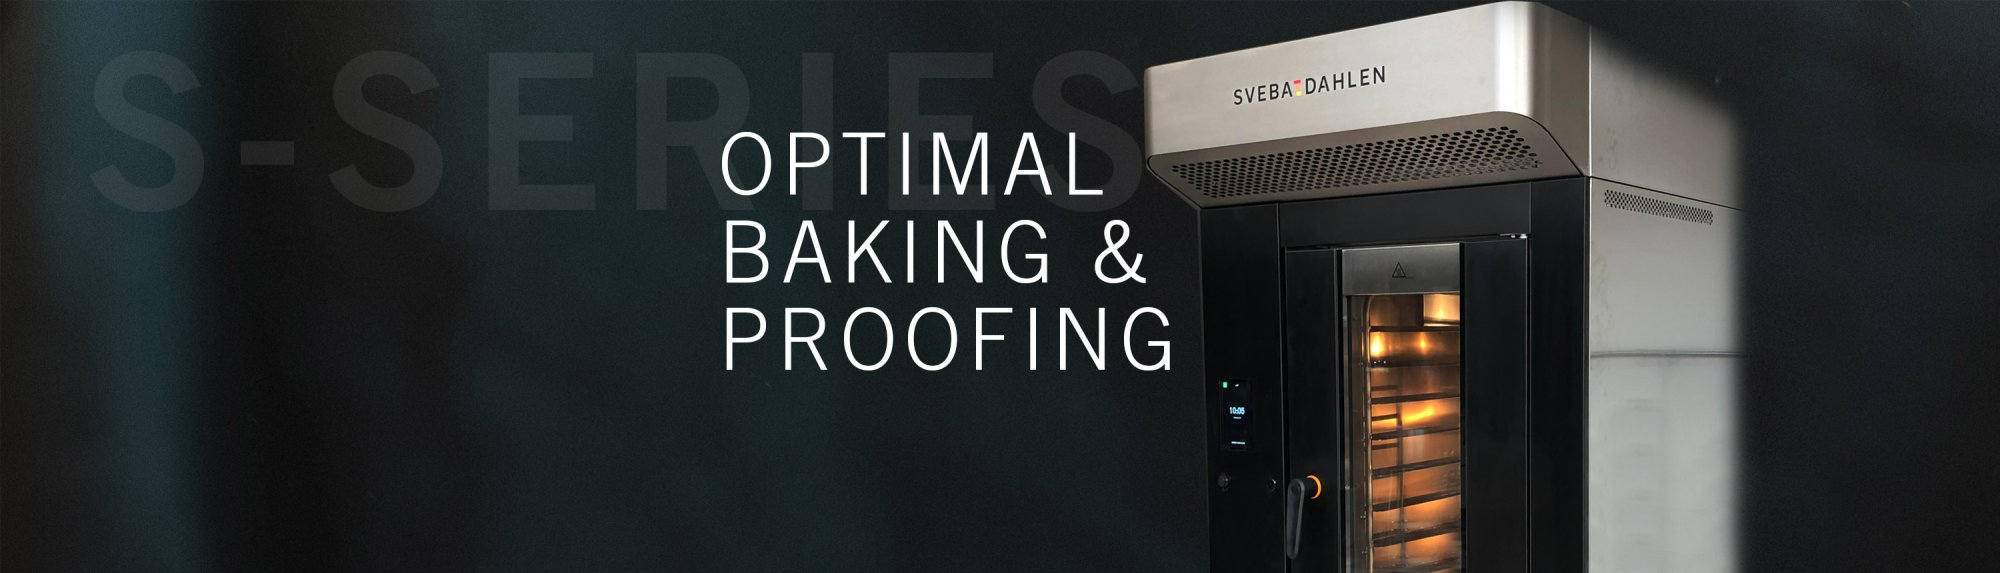 Optimized proofing and baking in the store bakery with the new S-Series from Sveba Dahlen